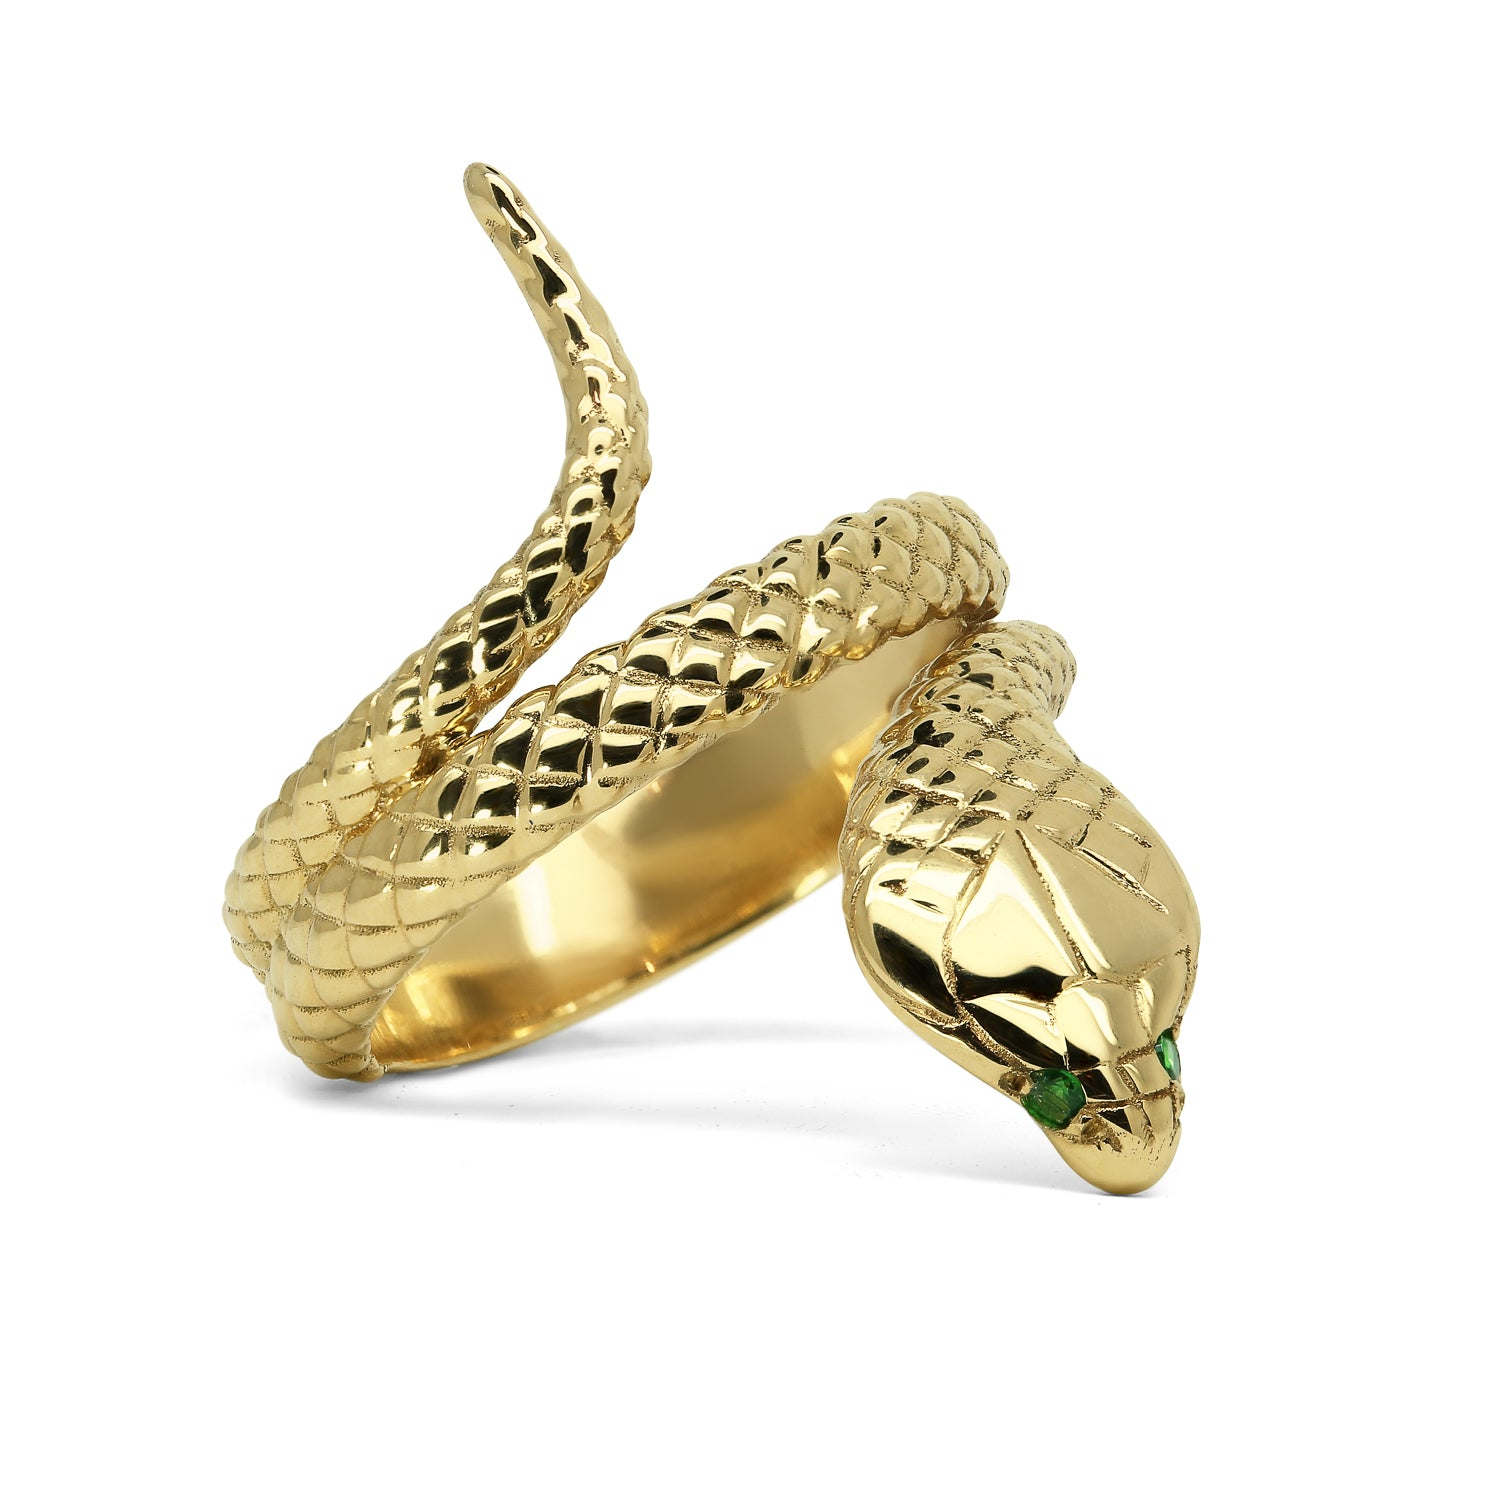 Bespoke Cobra Ring - hand-engraved 9ct recycled gold and ethical green garnets